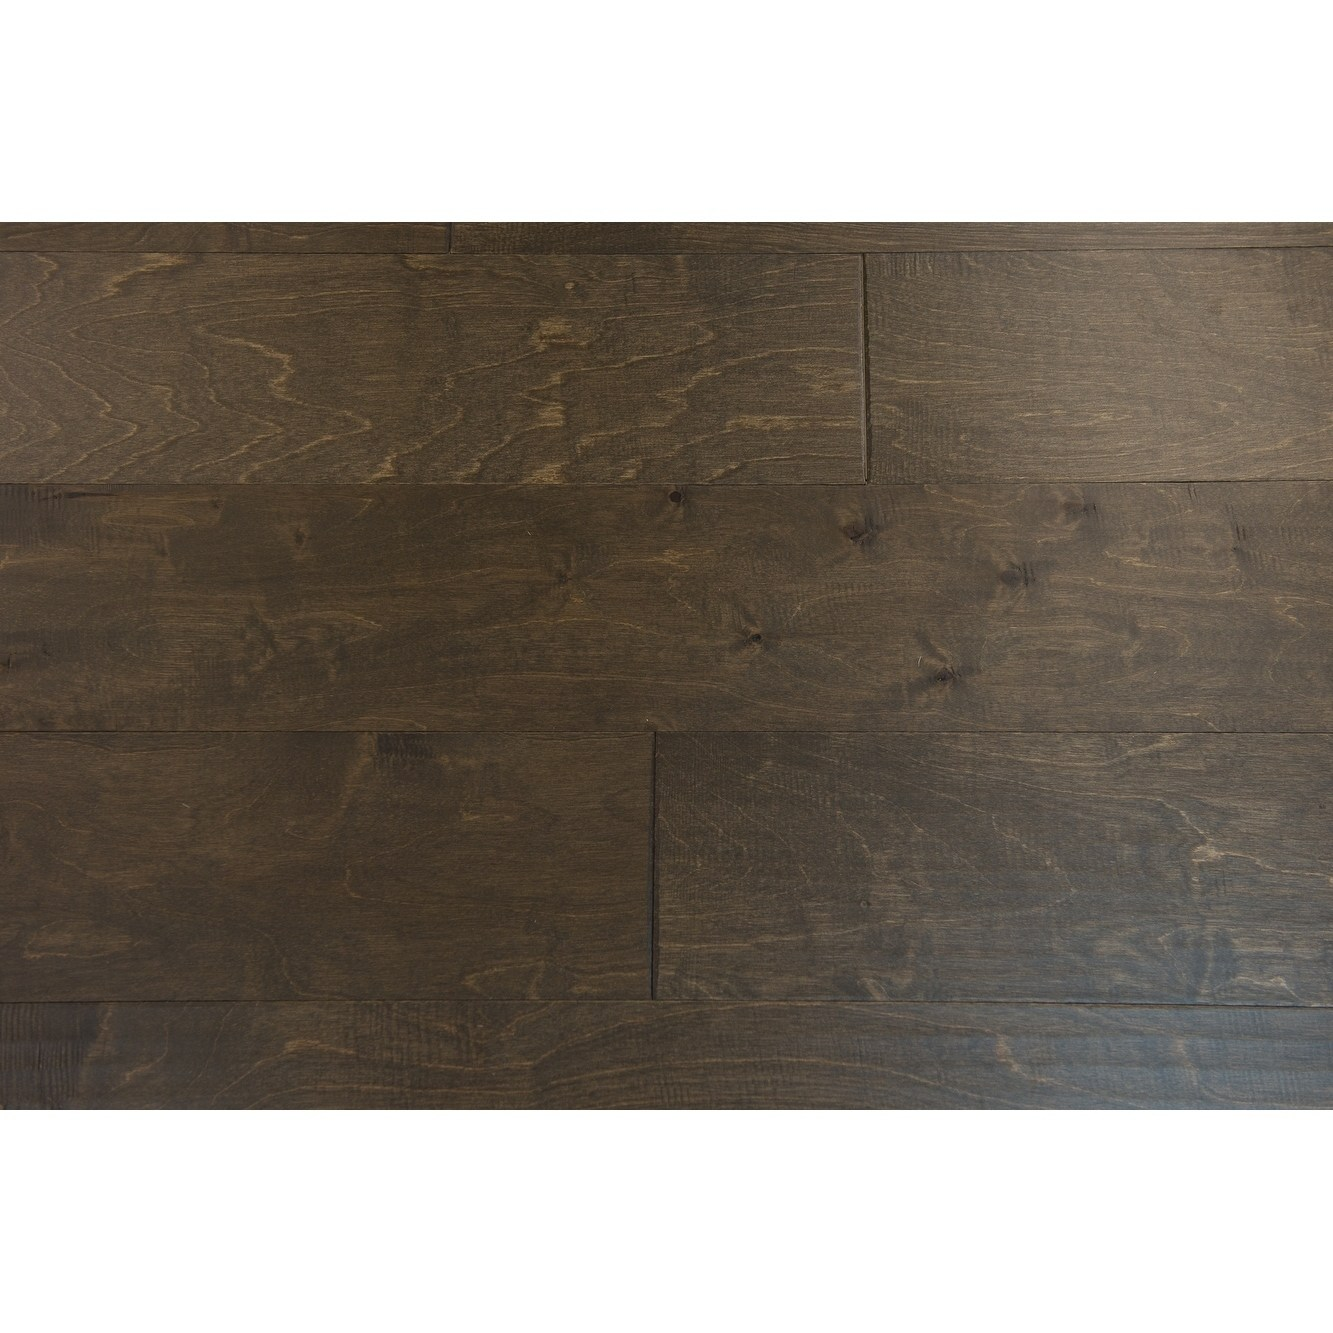 Belford Collection Engineered Hardwood In Umber 3 8 X 6 1 2 23 64sqft Case 3 8 X 6 1 2 Hardwood Floors Flooring Engineered Hardwood